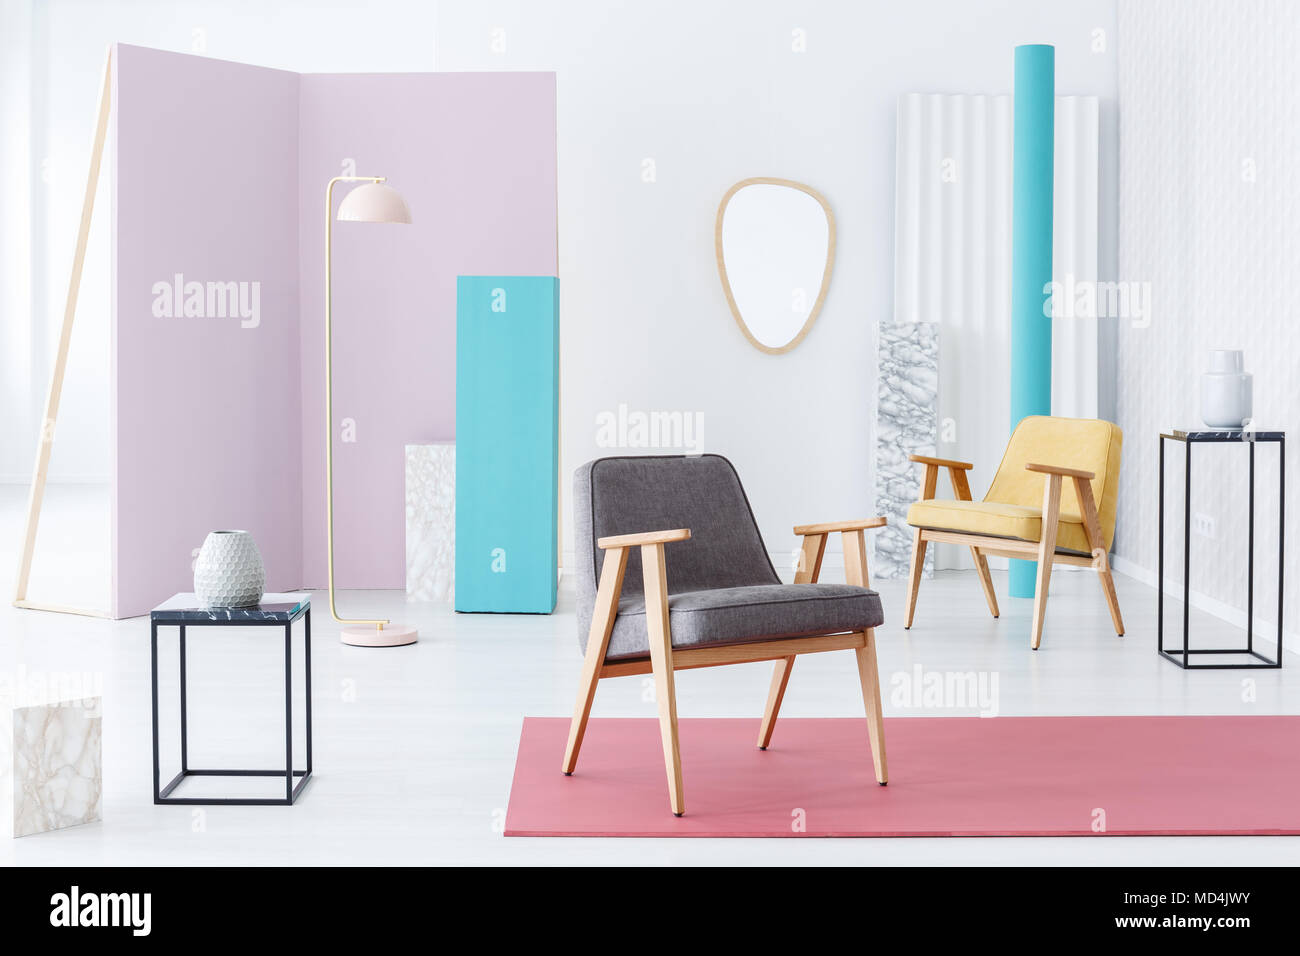 Modern furniture and accessories still life composition in a fun bright interior with pink blue and marble elements and armchairs